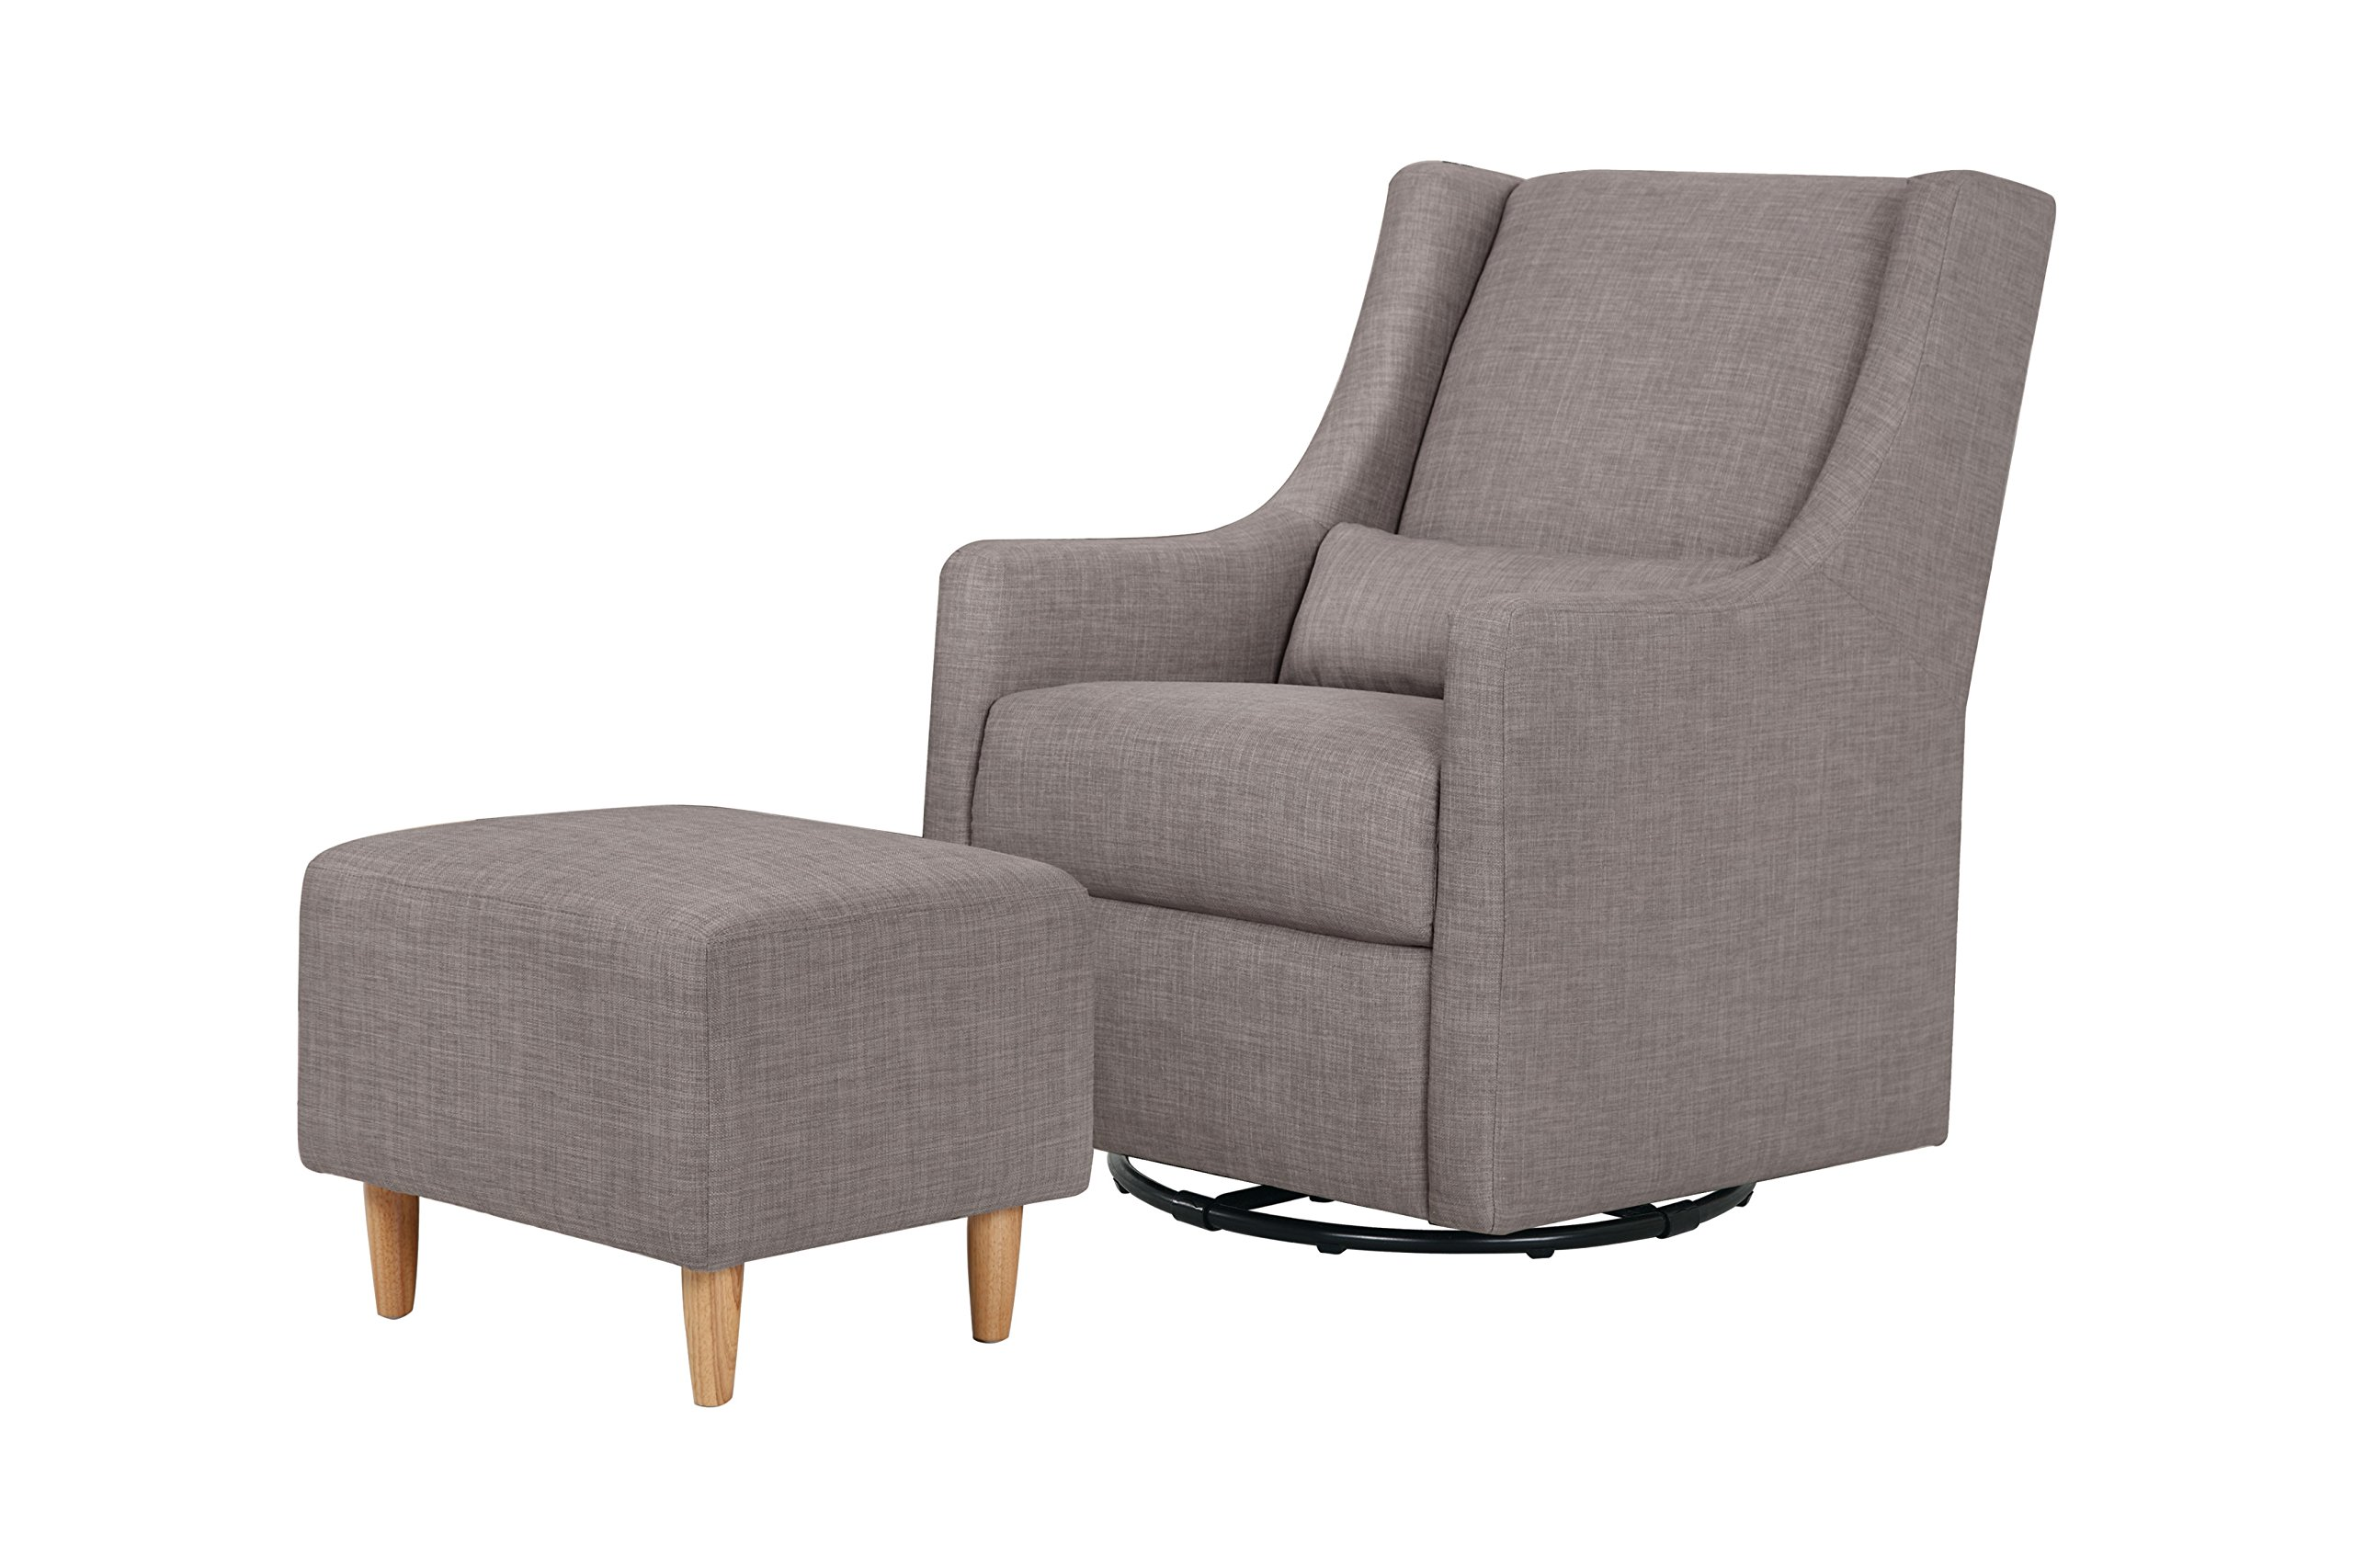 Babyletto Toco Swivel Glider and Stationary Ottoman, Grey Tweed